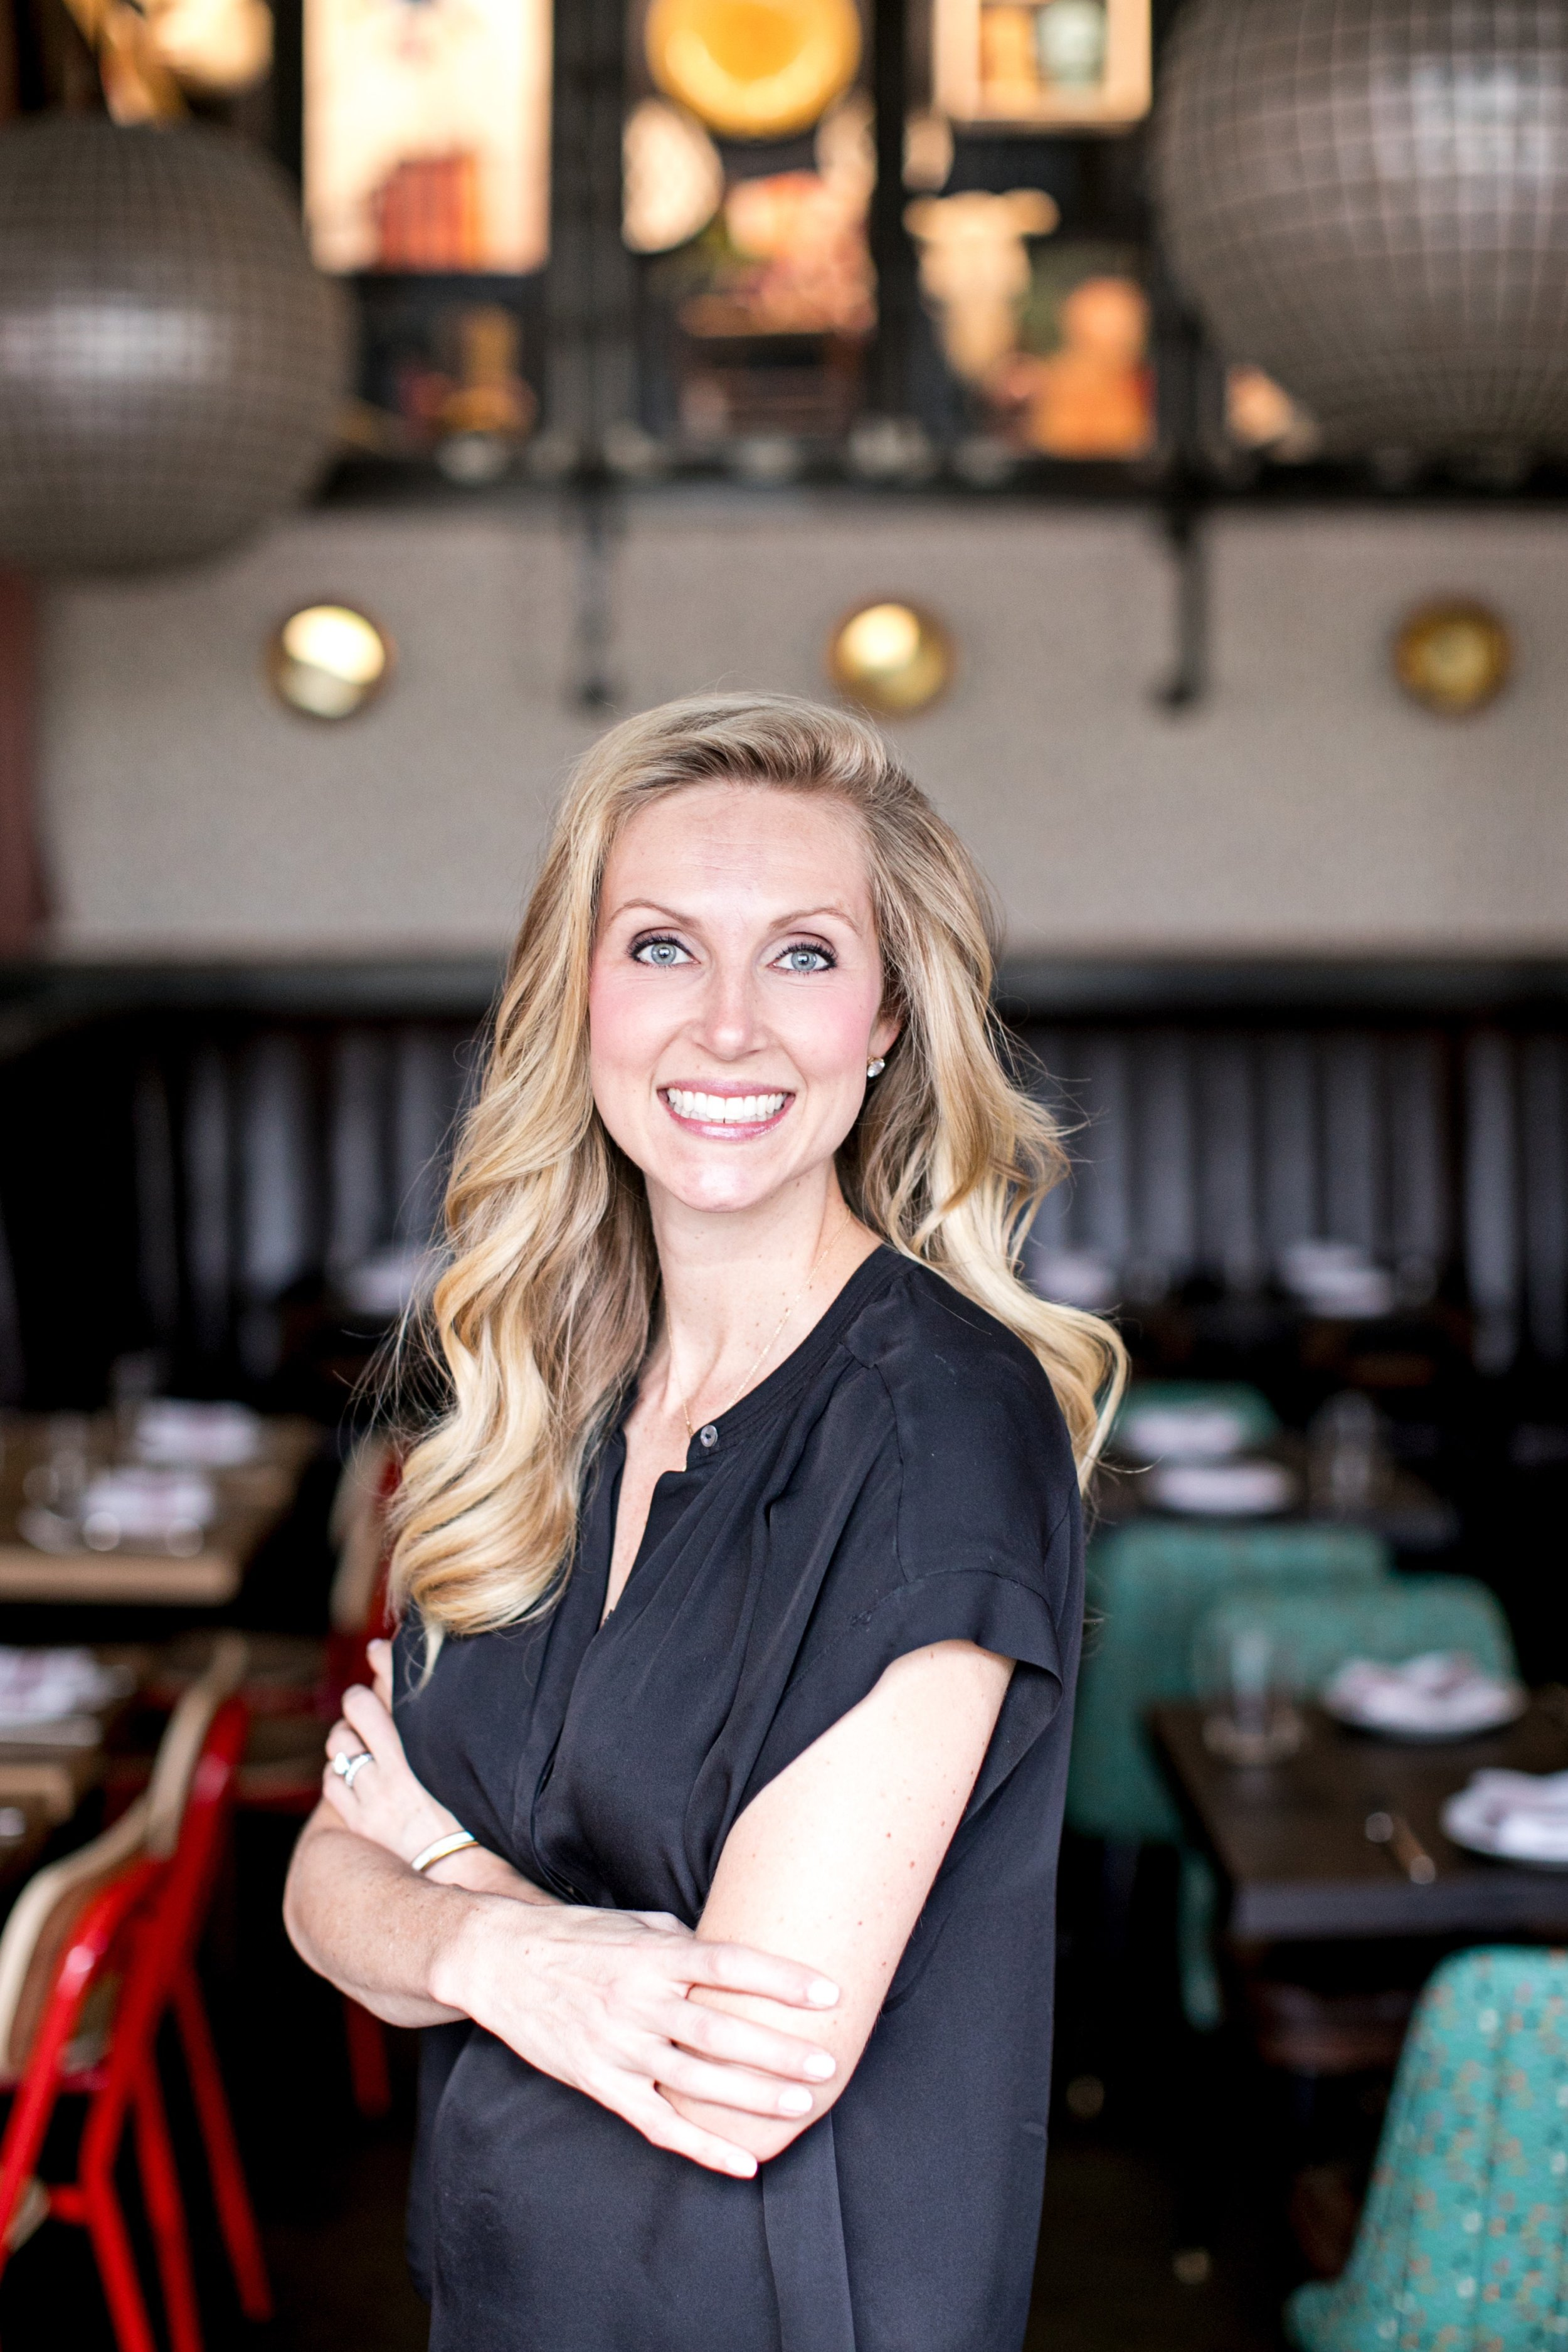 Lauren received her education at Cornell University. She, unlike the other Castelluccis, did not attend the Hospitality school and has a degree in Economics and Business Management. Lauren and Federico met their senior year at Cornell and the love story was written while Fred worked to rebuild and grow his family's business. Their courtship spanned from NYC to ATL and Lauren would fly down for weekends and work as Fred's Maitre D first at Sugo, and then at each of the subsequent restaurants as the company expanded.  After spending 10 years in investment banking and investment management between Barclays Capital in NY and JPMorgan in Atlanta, Lauren officially joined the CHG corporate team in May 2017 following the birth of their daughter, Olivia. Lauren is primarily focused on driving sales in our current restaurants. She manages our marketing team and all of our marketing efforts, which includes our social media presence, our email marketing campaigns, all of our branded collateral, printing and general community brand awareness..  Fun Fact: Lauren has more shoes than a department store.